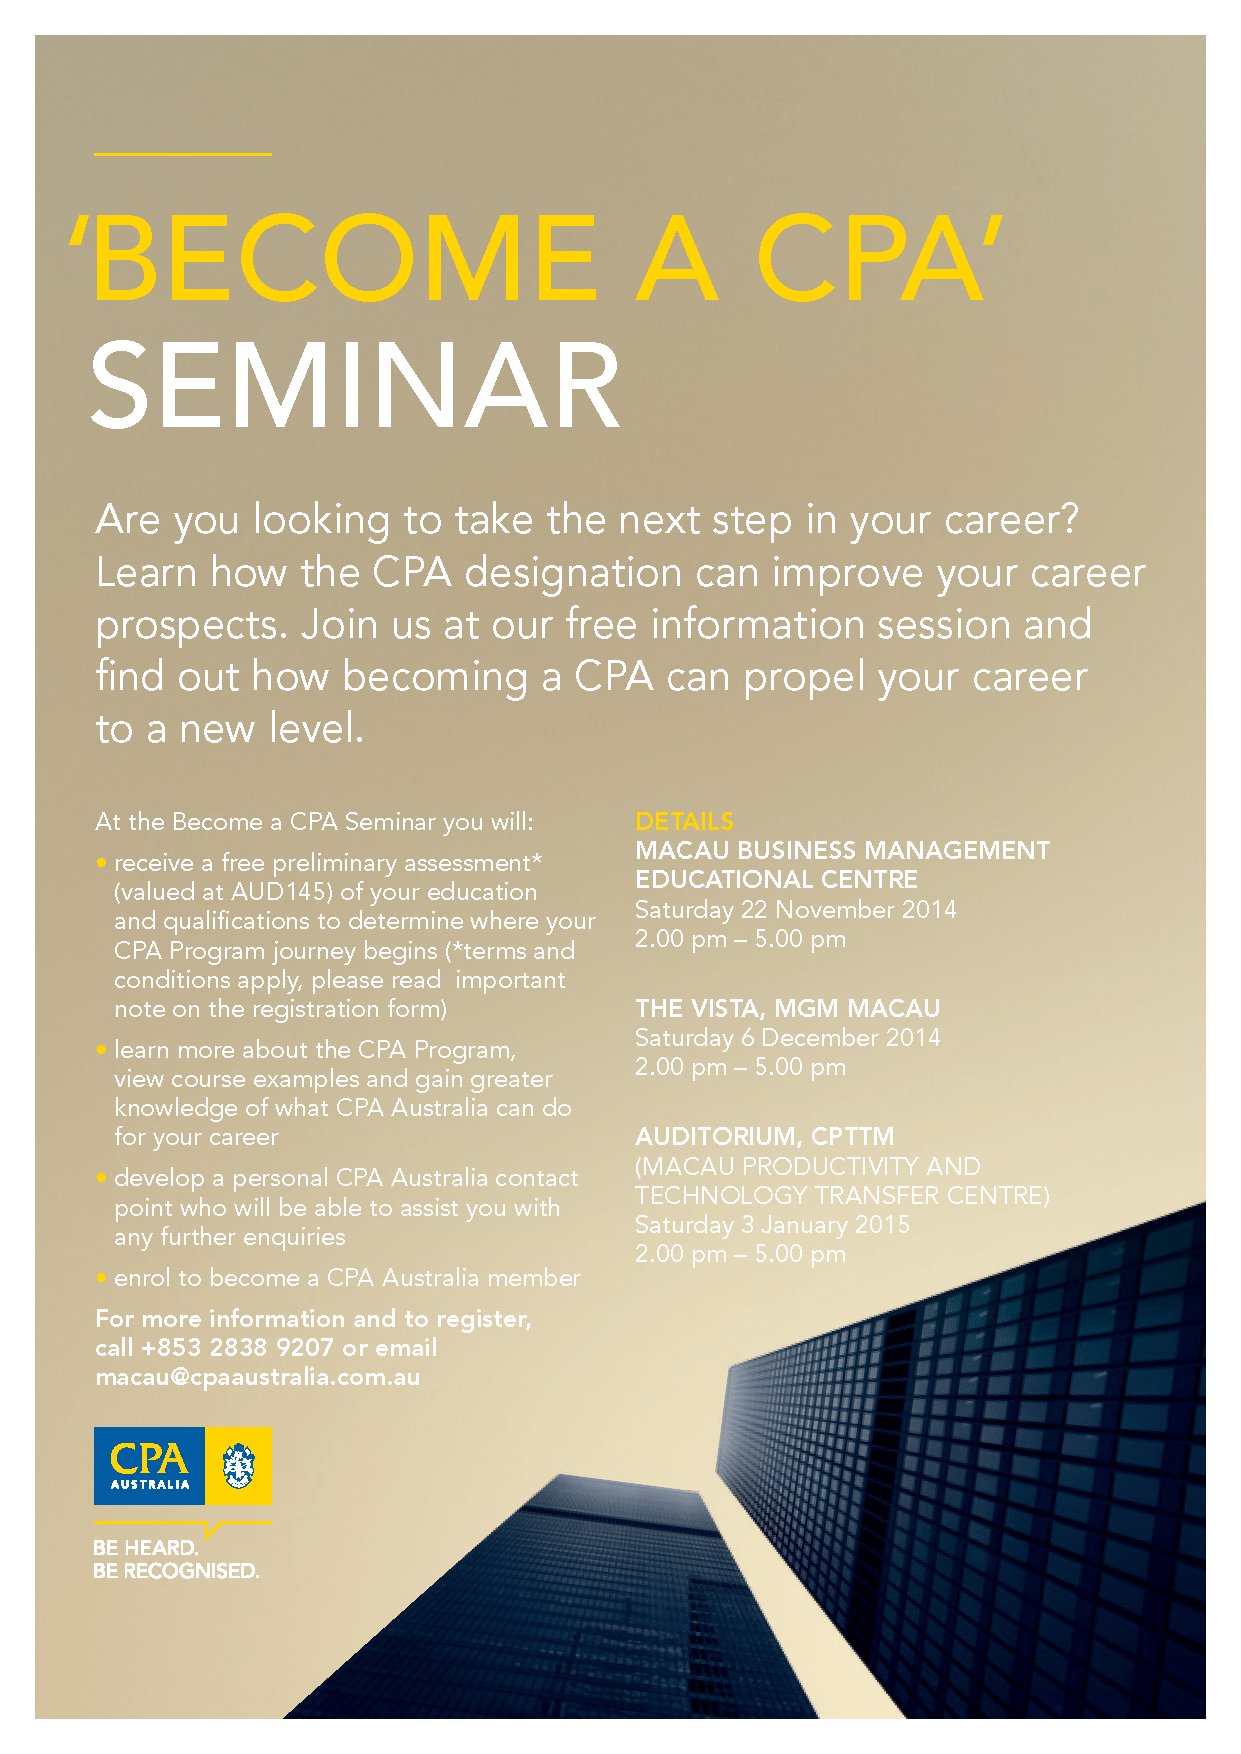 Invitation to Become a CPA Seminars in Macao on November 22 2014